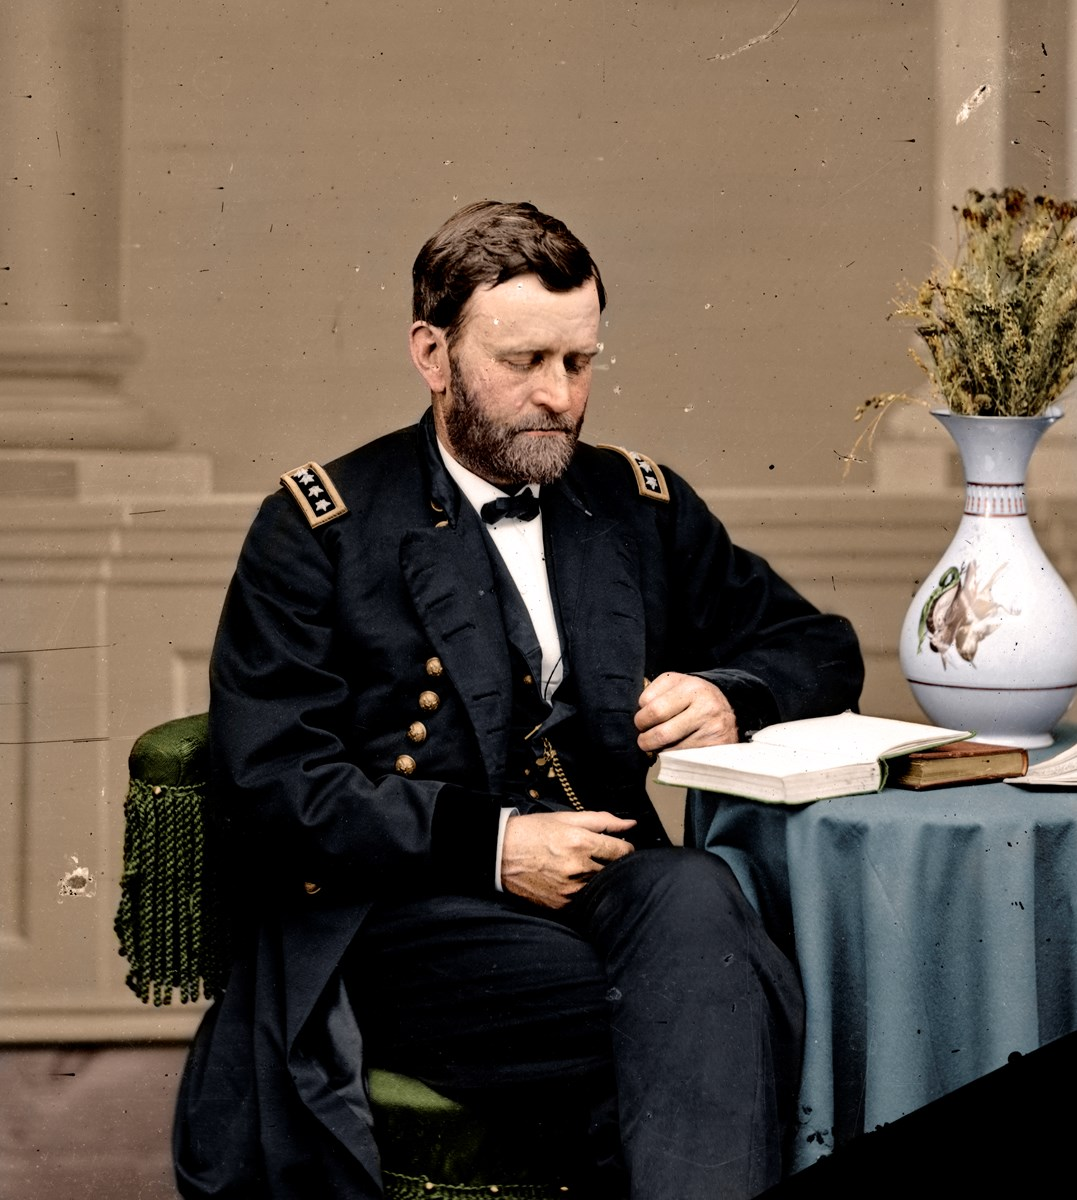 Colorized photograph Ulysses S. Grant seated and reading a book.